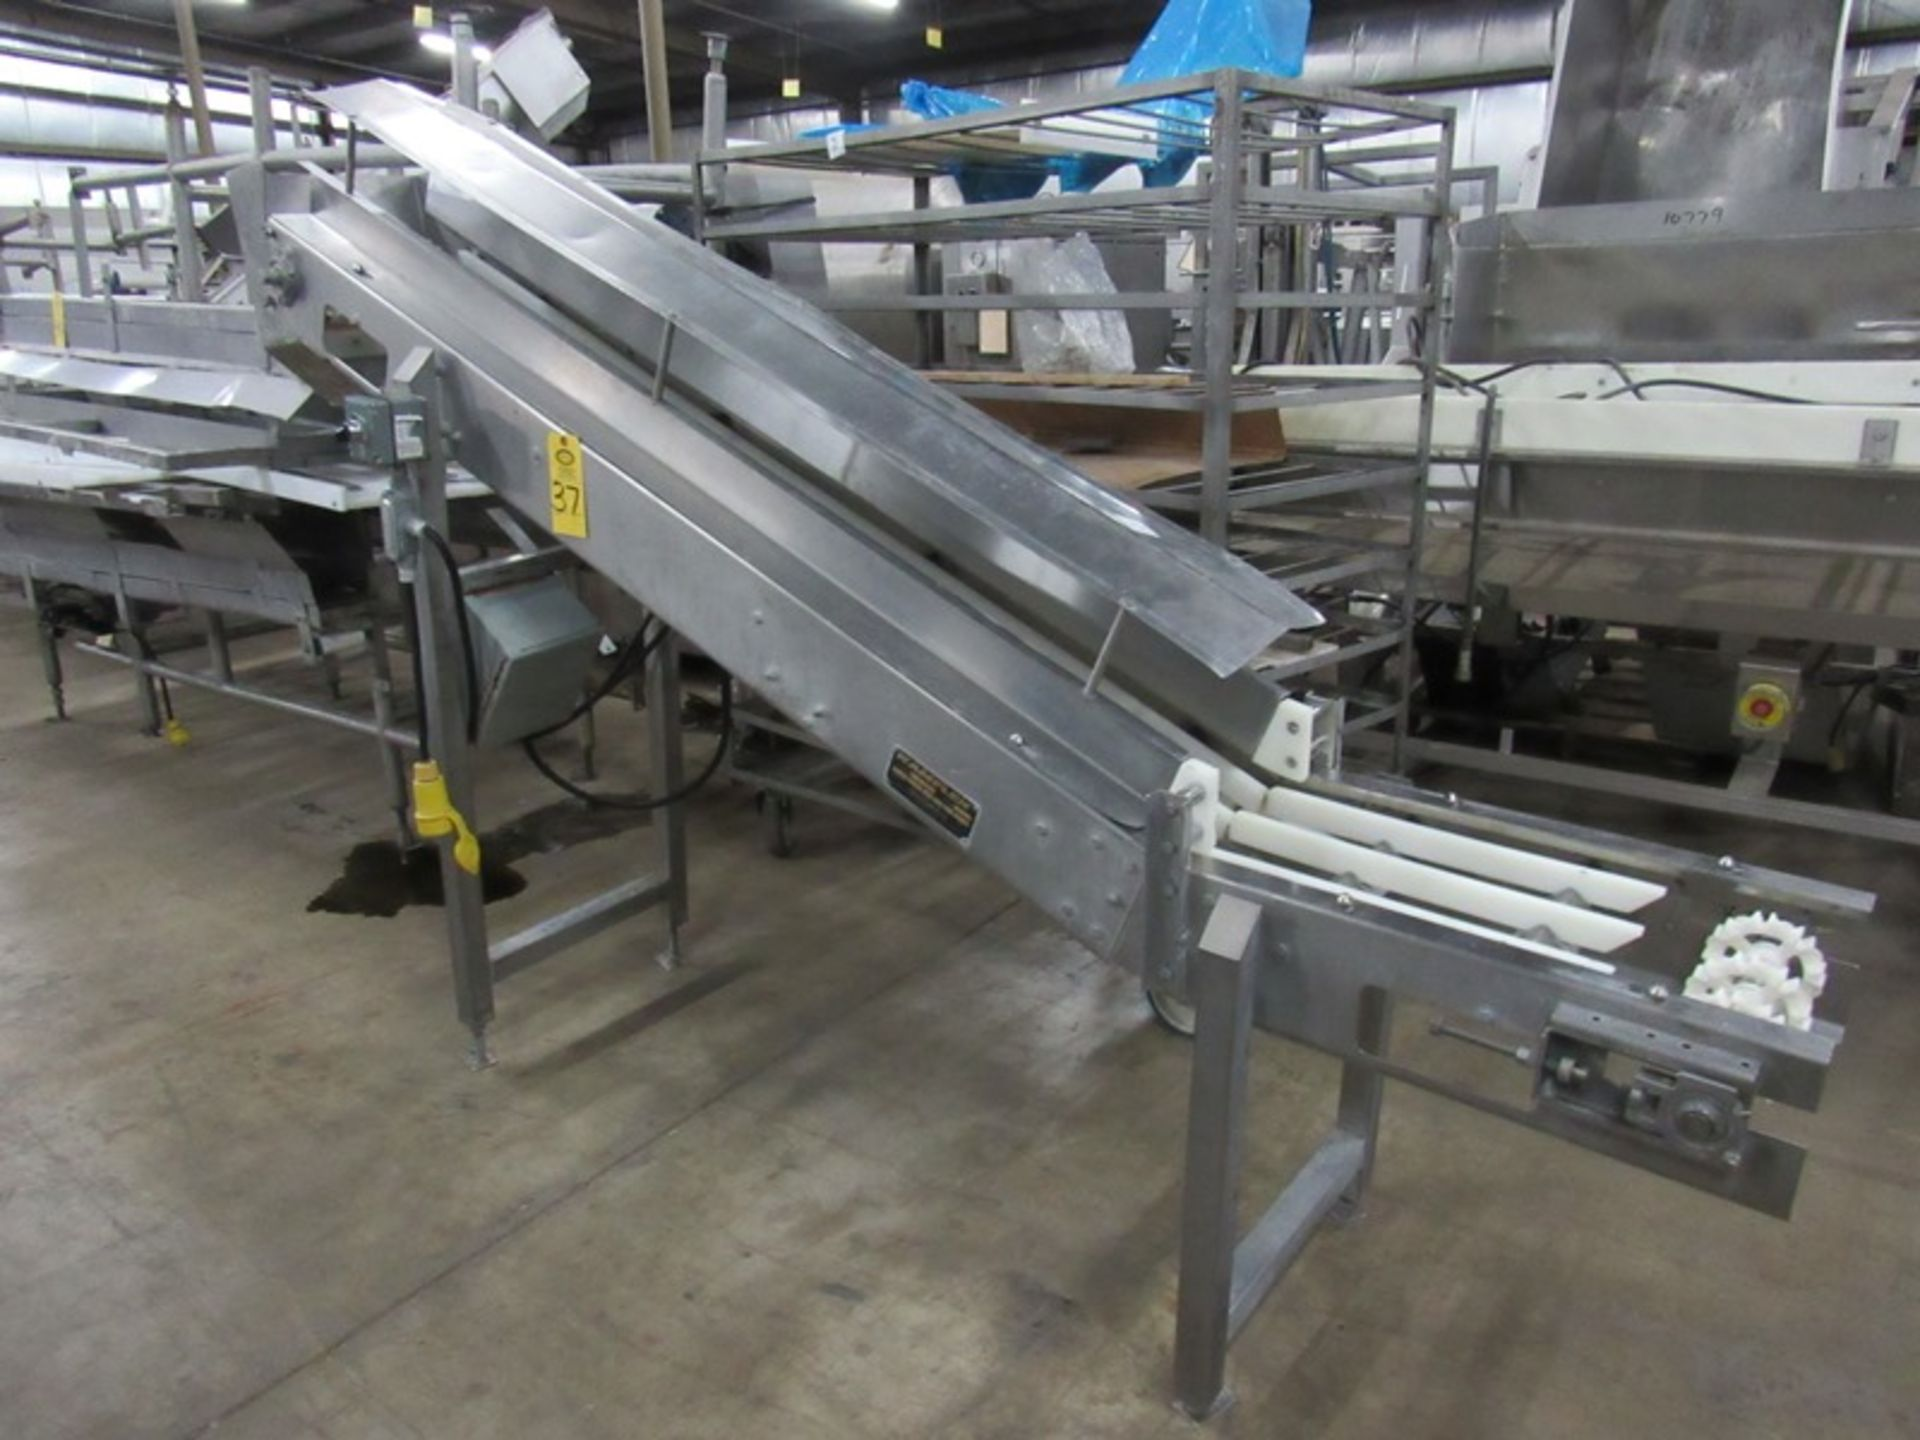 """Lot 37 - Kamflex Mdl. 810 Stainless Steel Incline Conveyor, 10"""" W X 9' L, 30"""" infeed, 64"""" discharge,"""